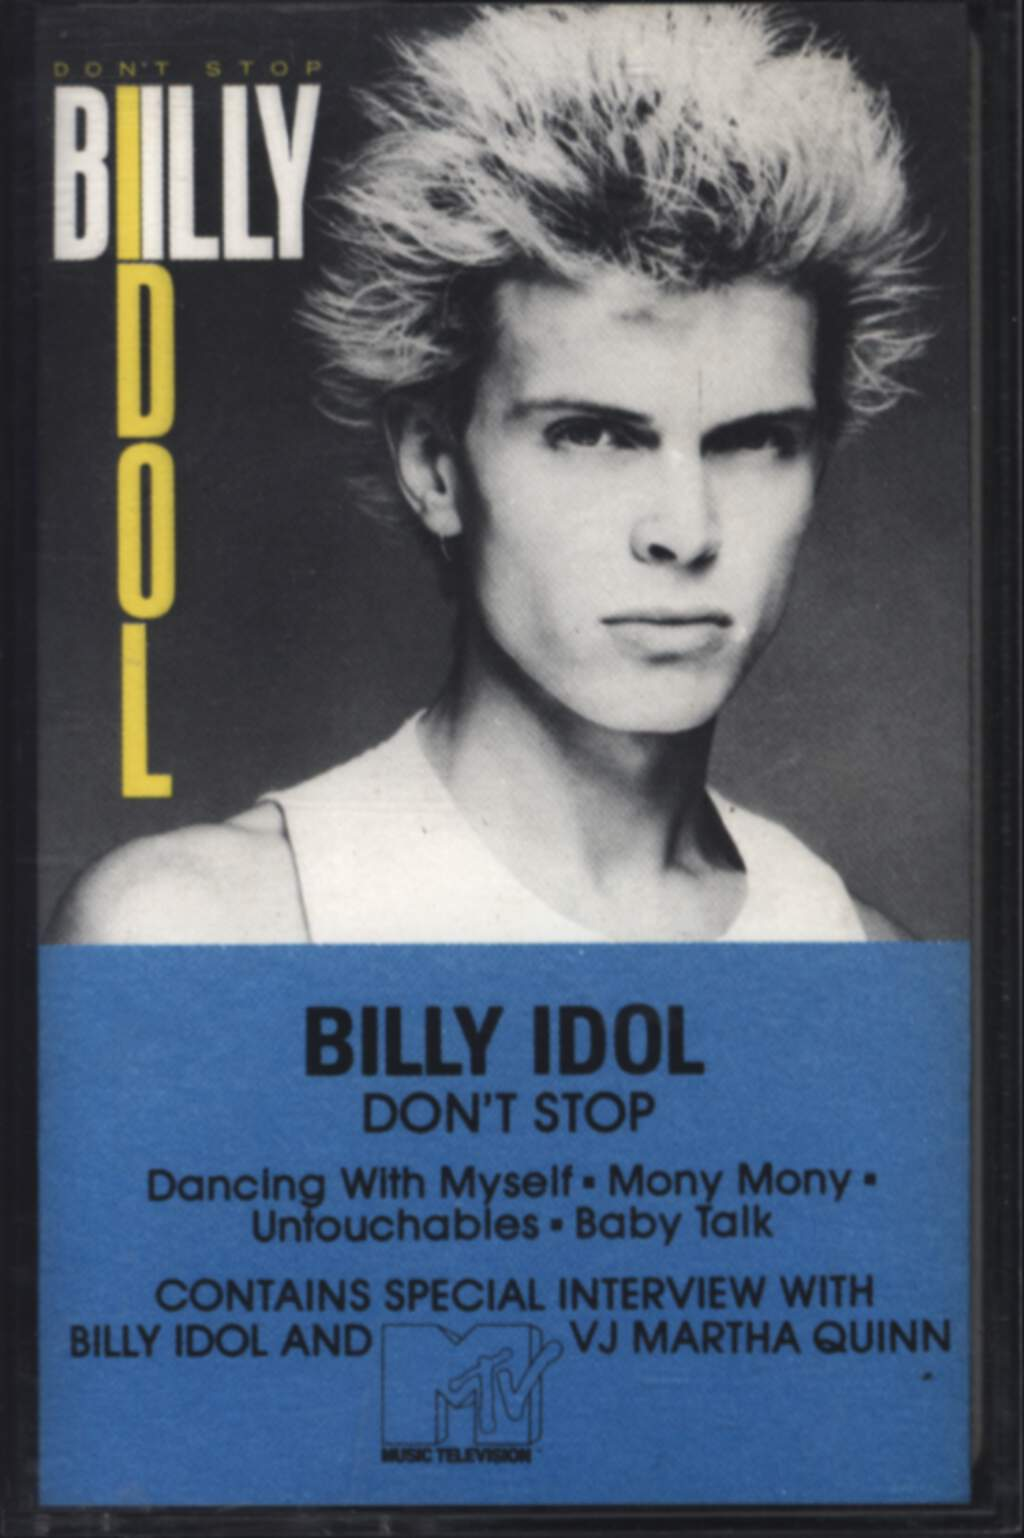 Billy Idol: Don't Stop, Tape